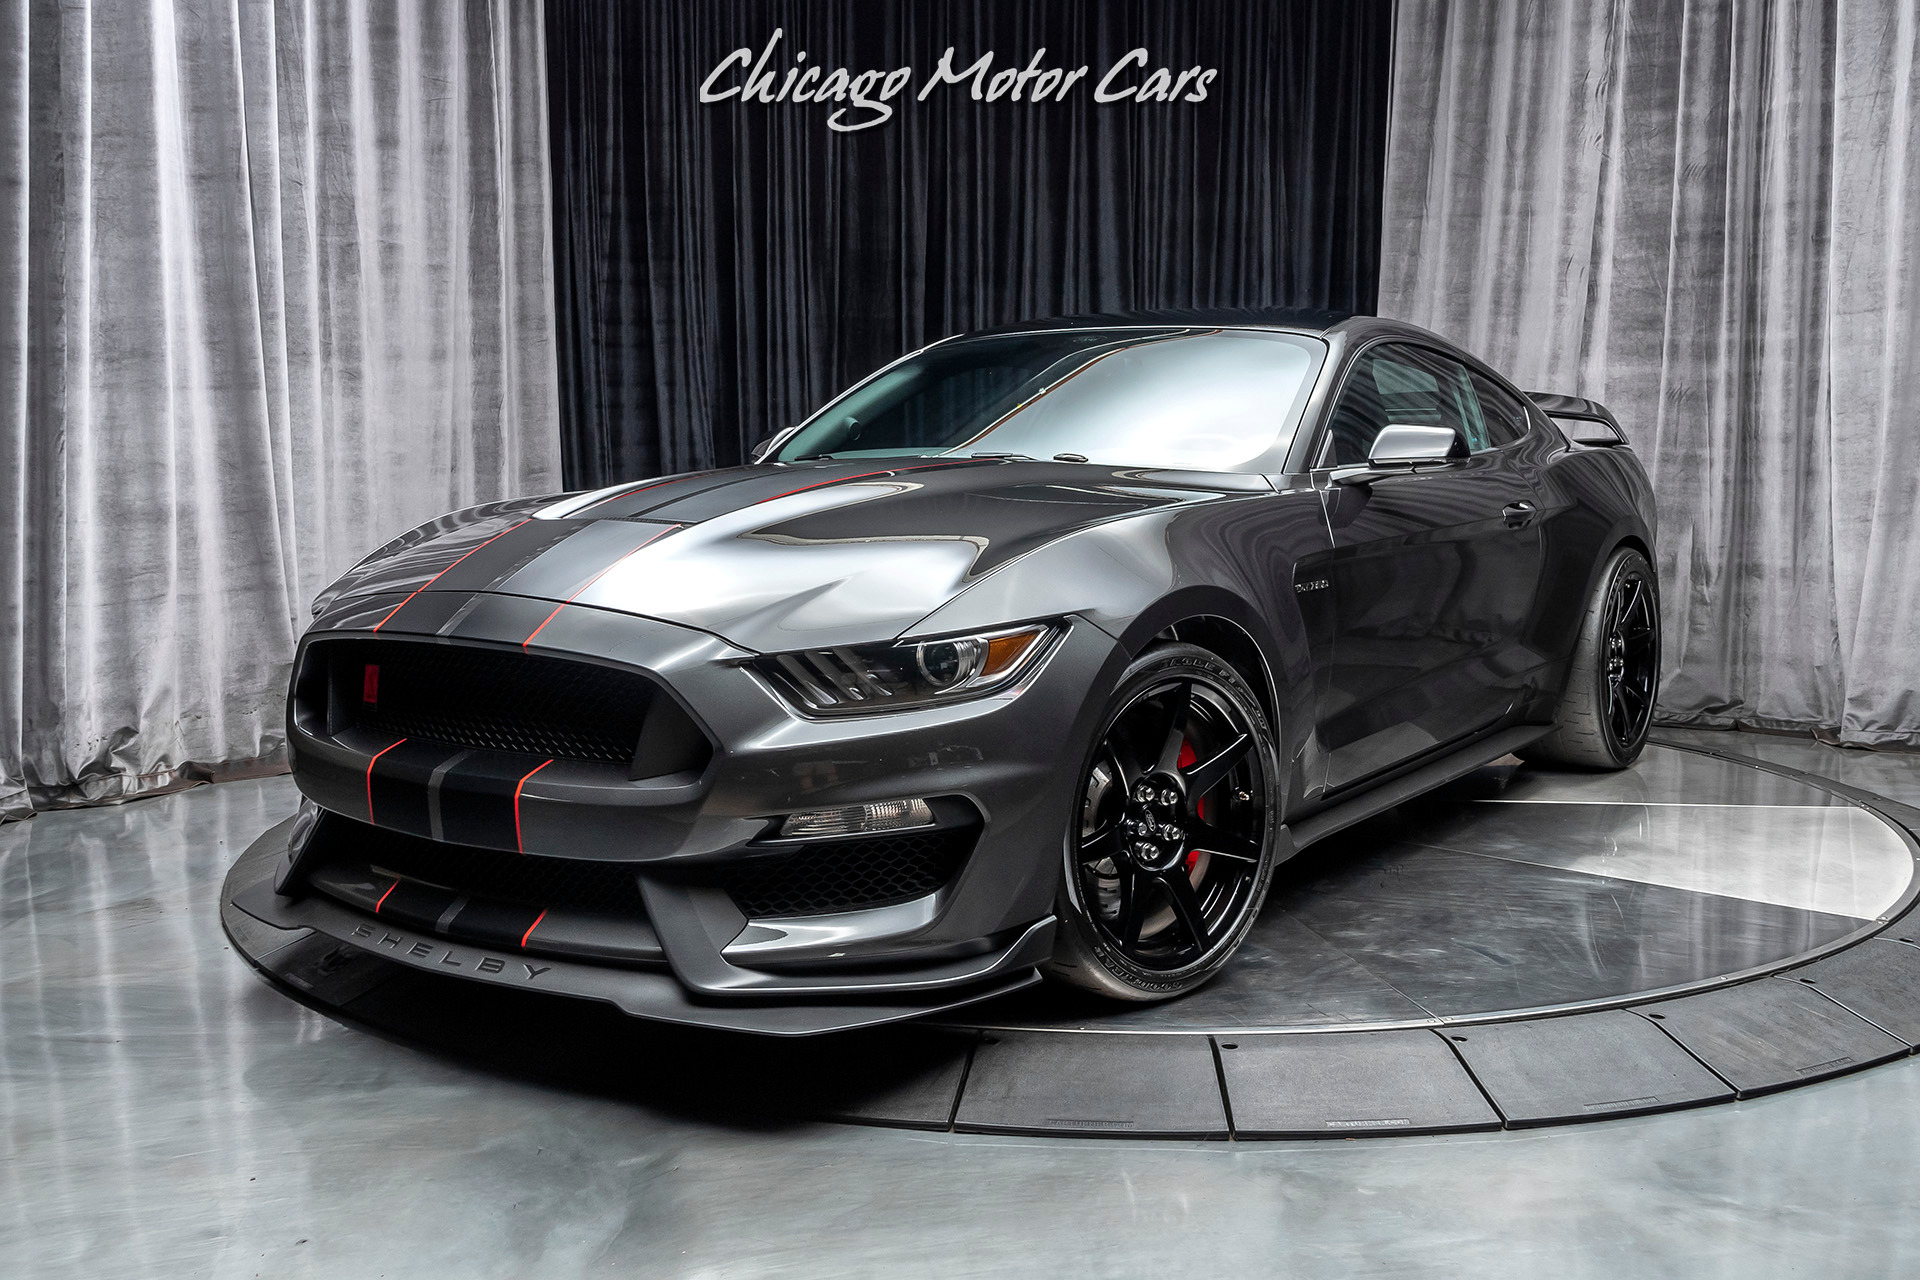 Used-2017-Ford-Mustang-Shelby-GT350-R-Coupe---R-ELECTRONICS-PACKAGE-19-CARBON-FIBER-WHEELS